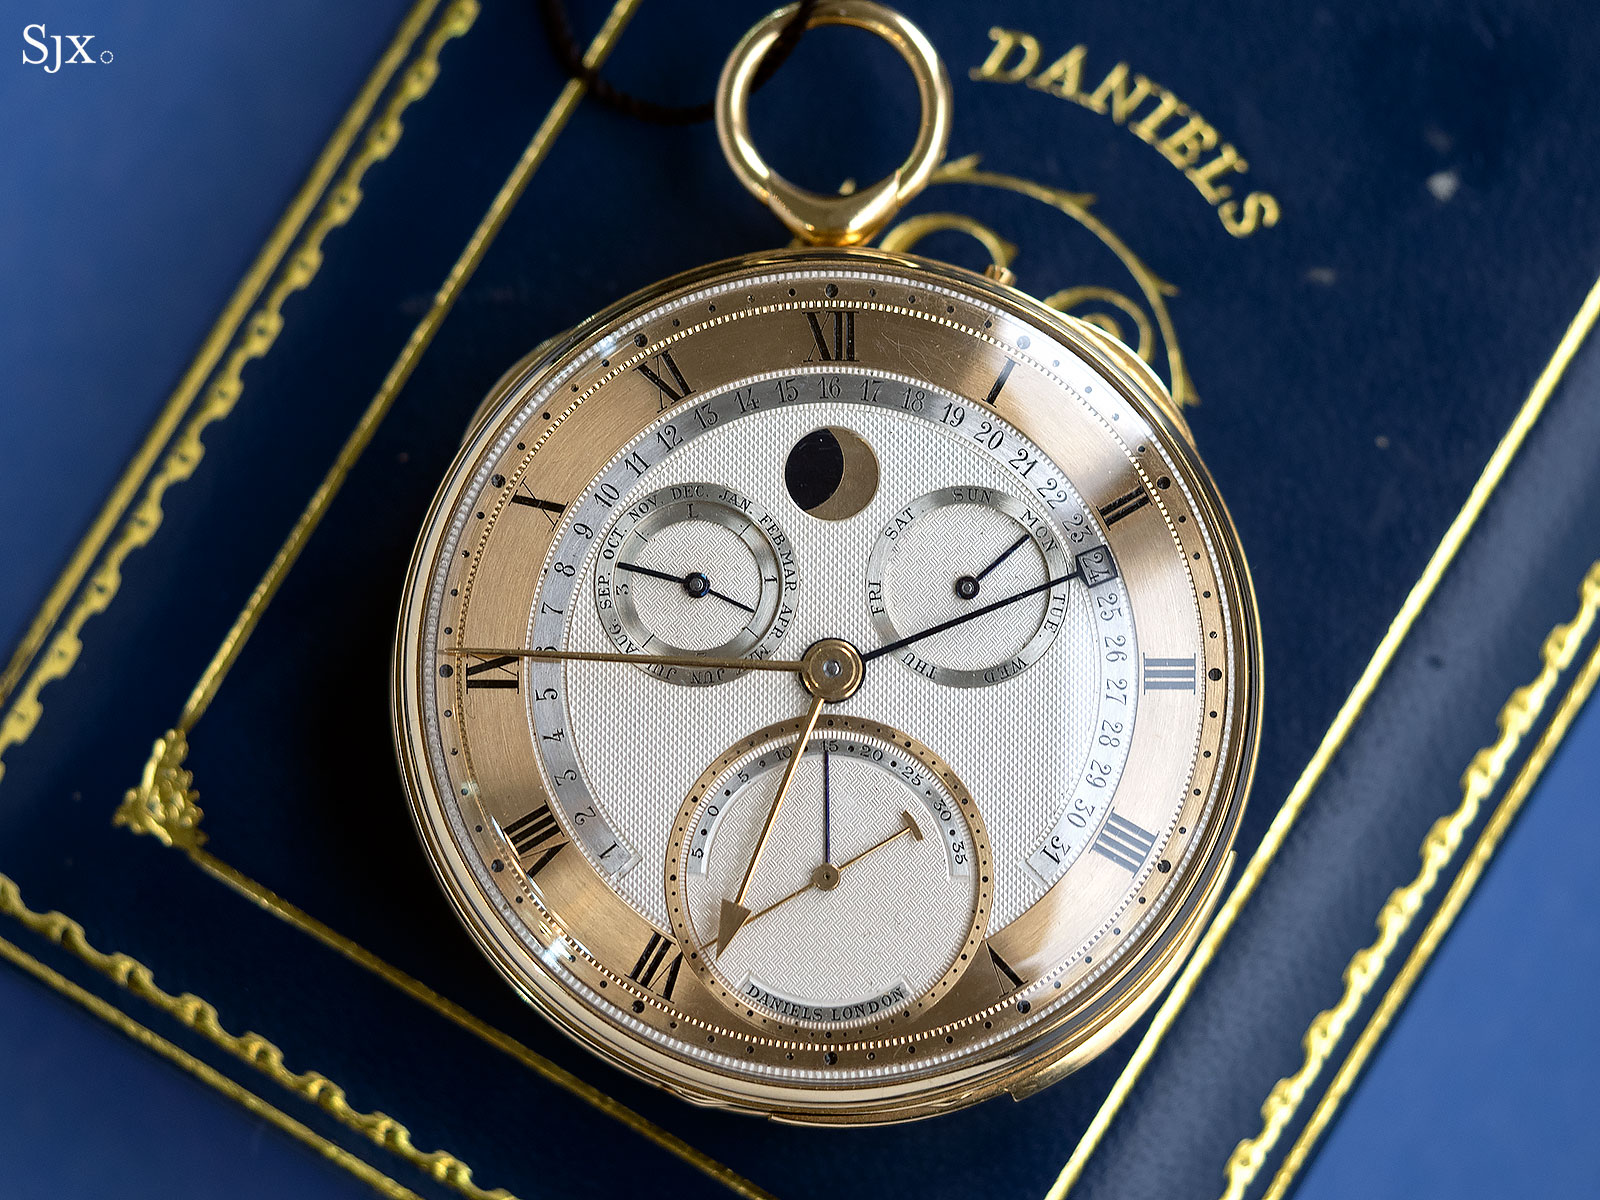 George Daniels Grand Complication pocket watch 1